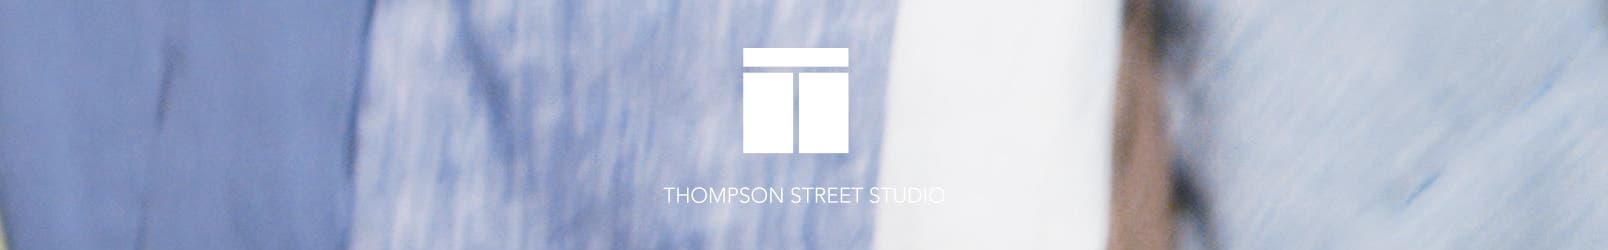 Pop-In@Nordstrom x Levi's clothing from Thompson Street Studio.